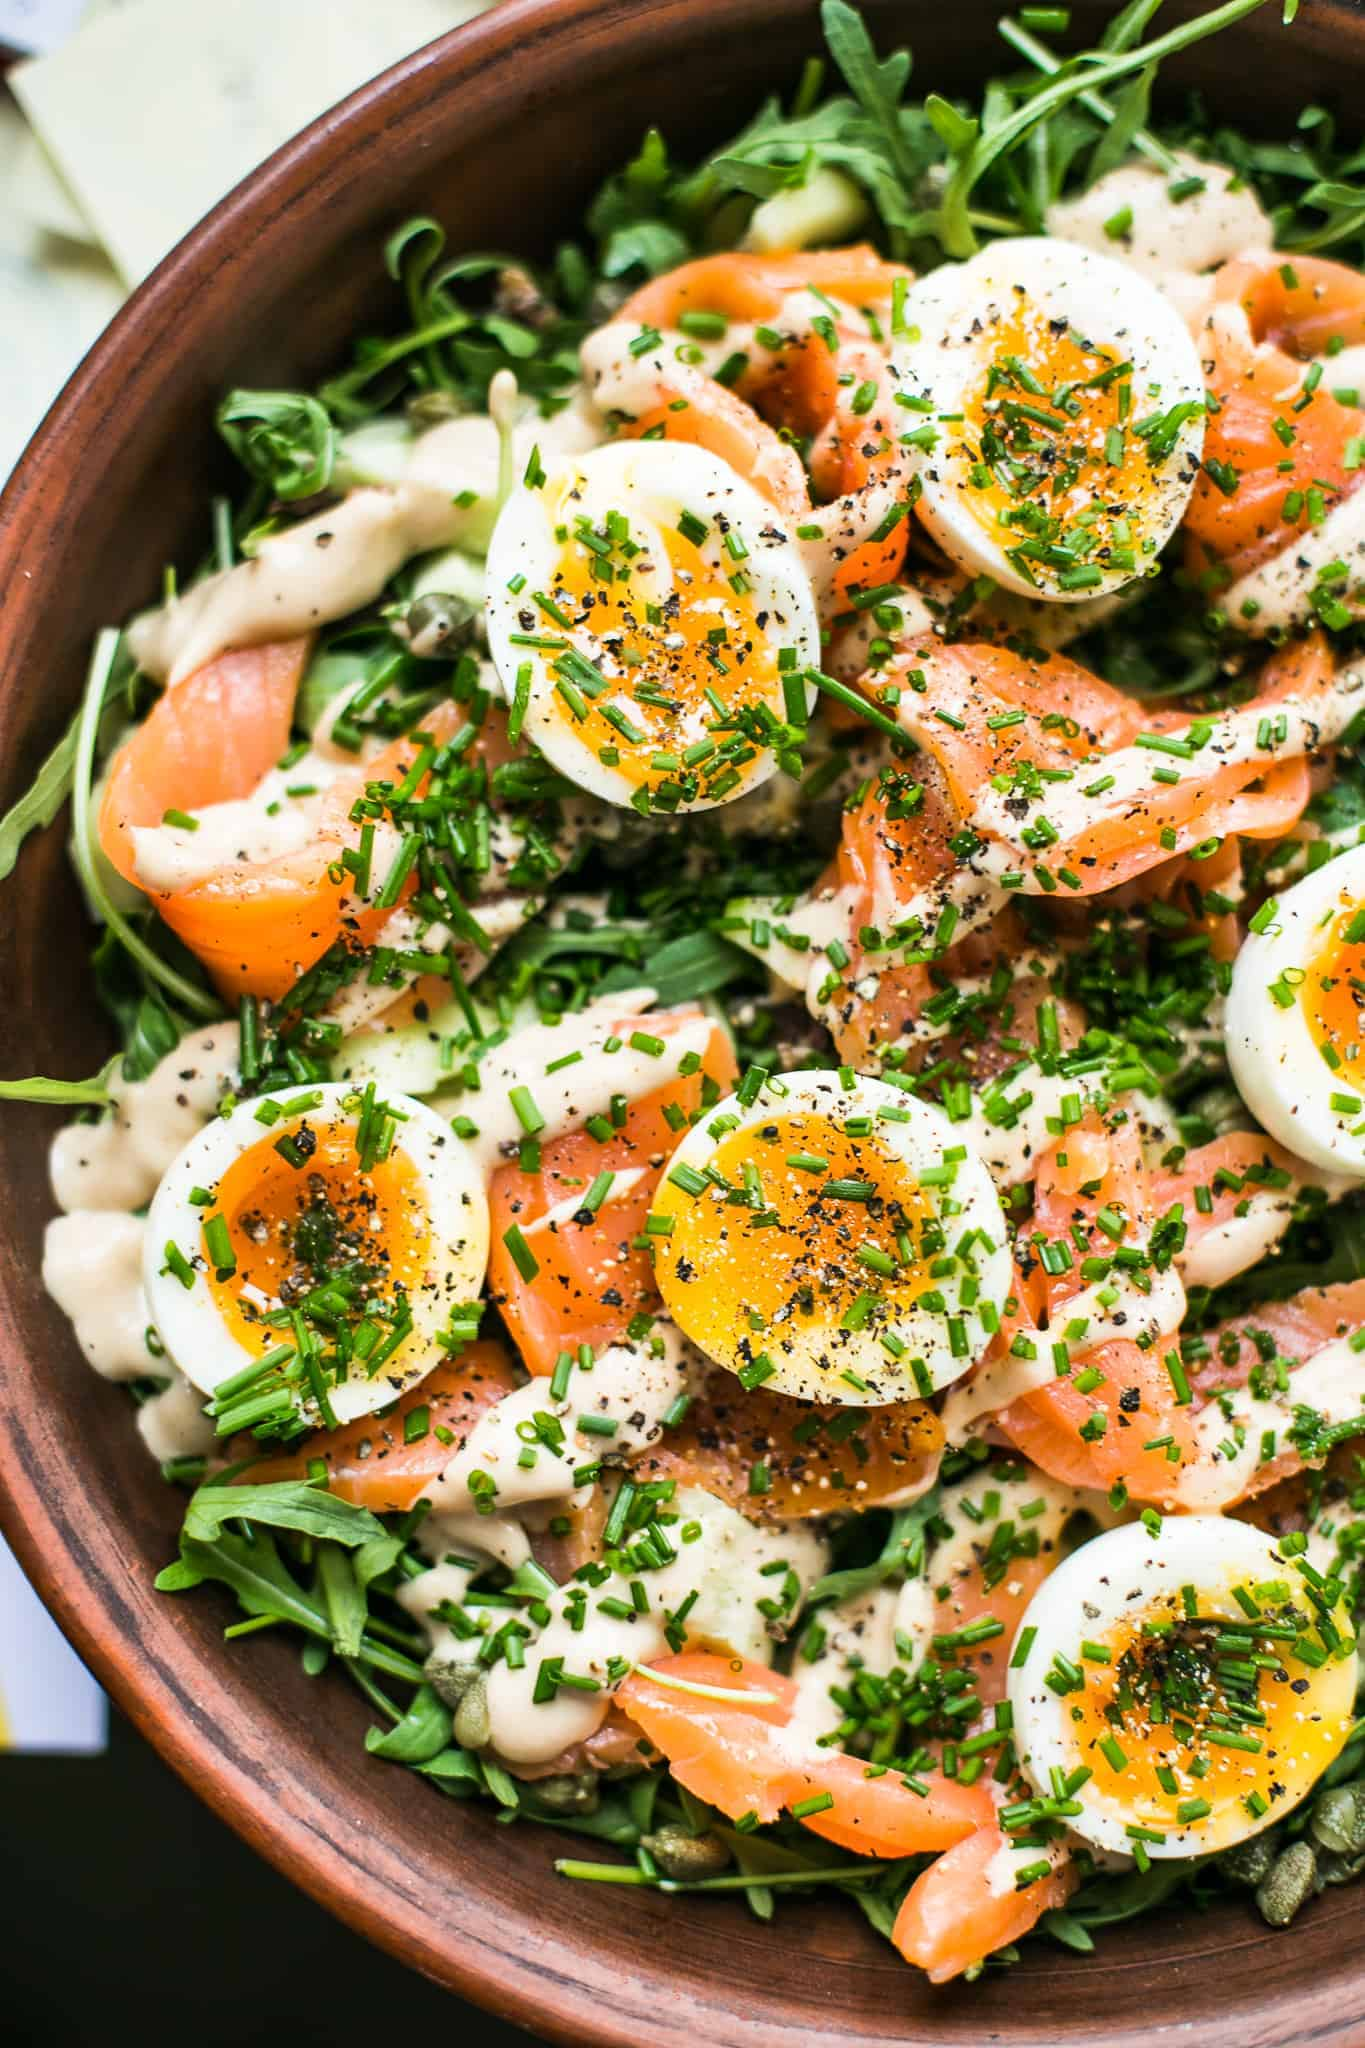 Easy home cure cured salmon and soft boiled egg salad. Perfect for weekend brunches, lunch or light dinner meals.